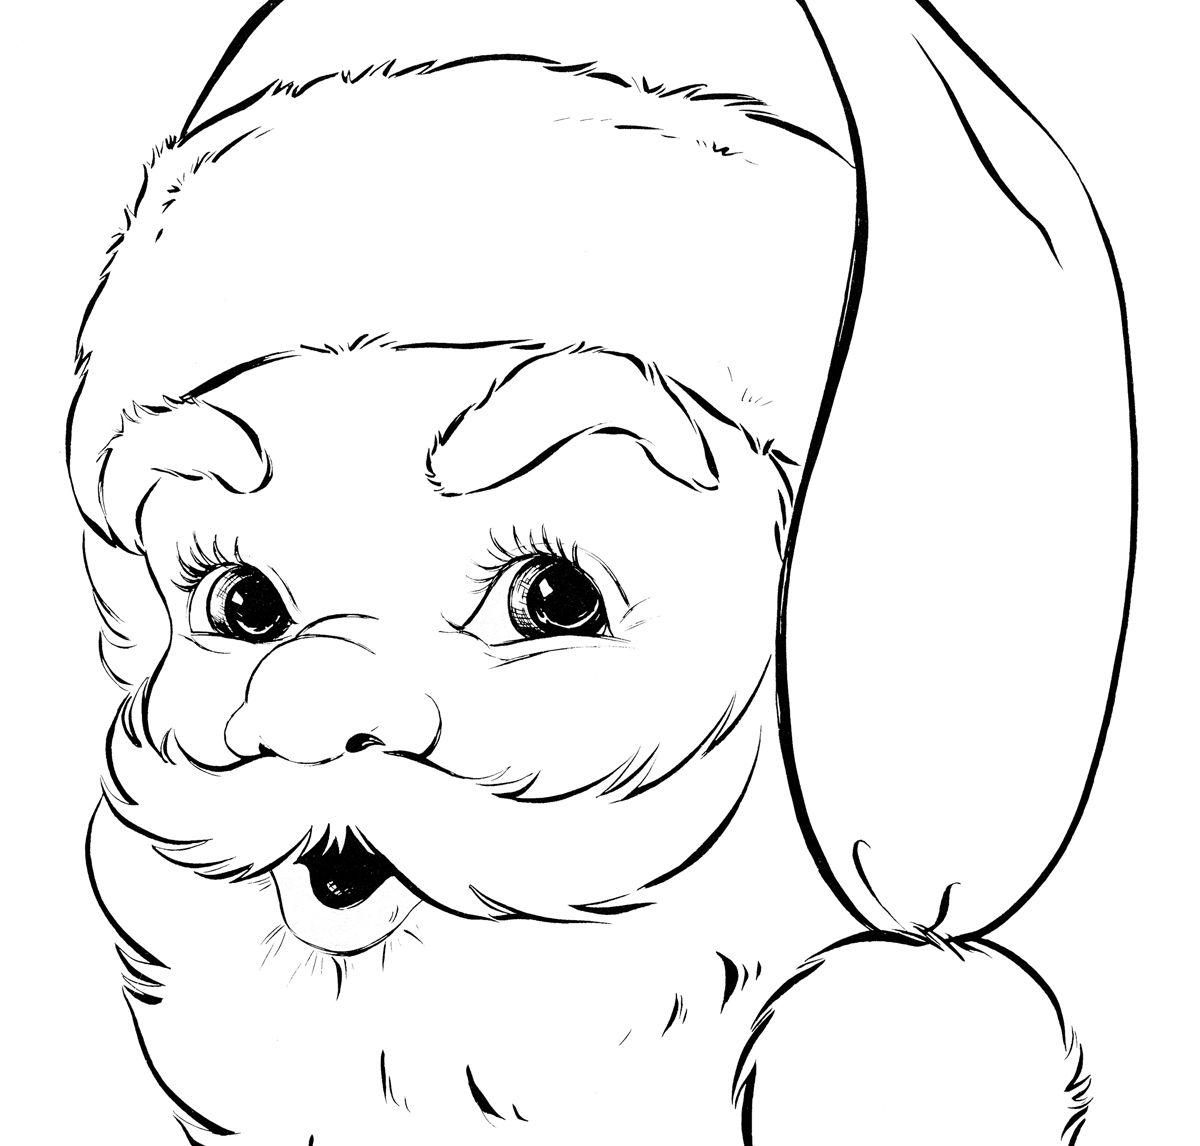 Santa Face Coloring Sheet With Retro Page Embroidery Patterns Pinterest